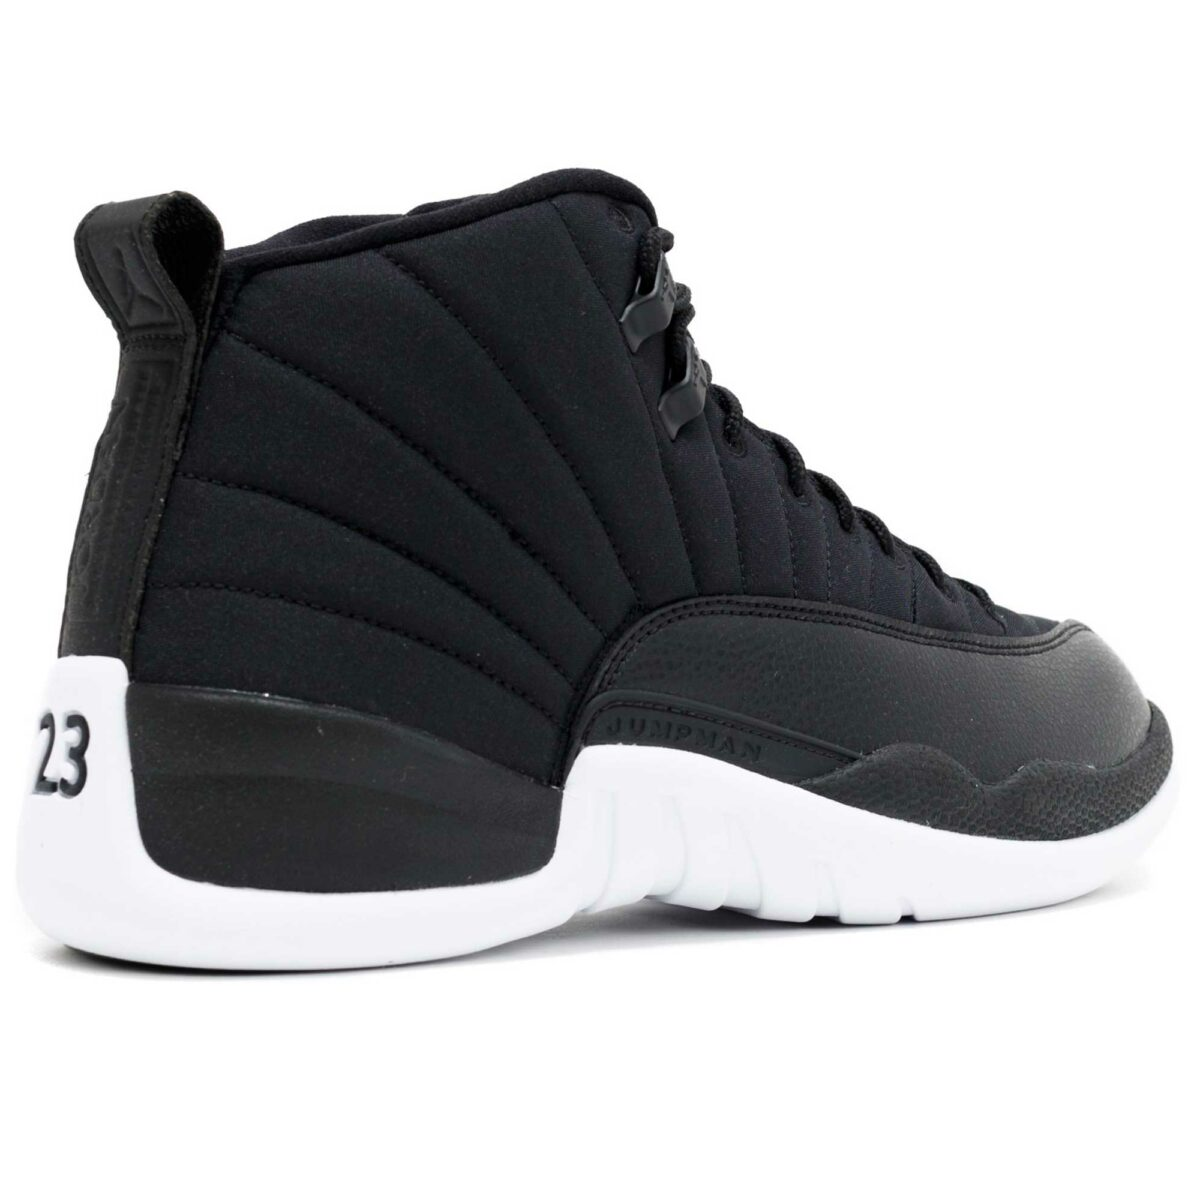 nike air Jordan 12 XII retro nylon 130690-004 купить